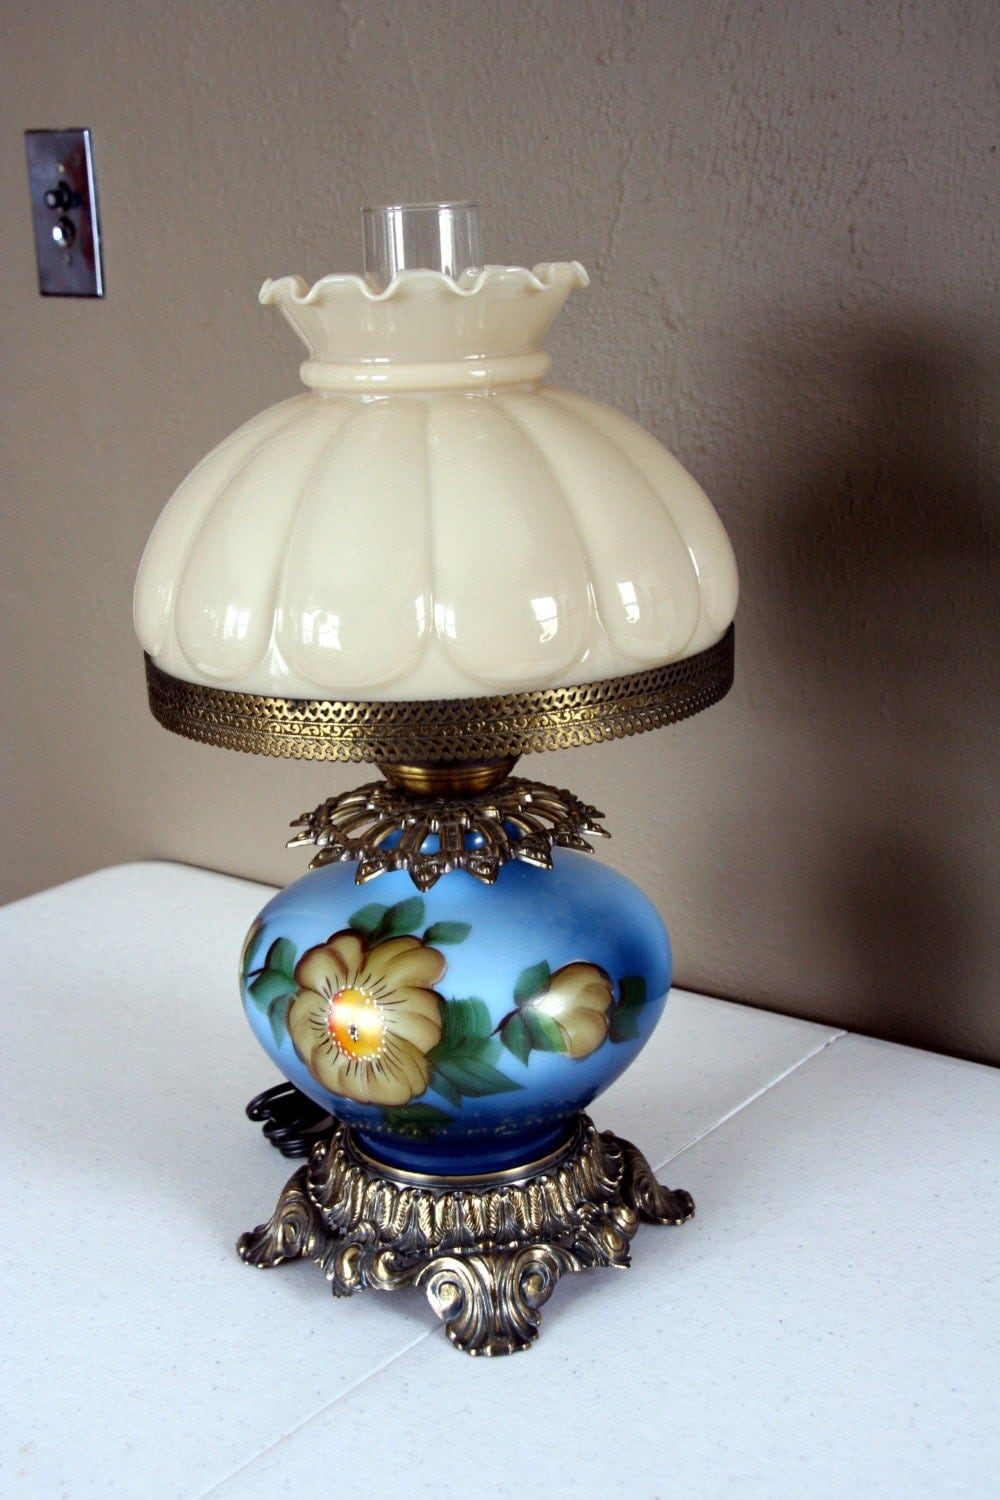 Gwtw Parlor Lamp L Amp L Wmc 1971 Handpainted By